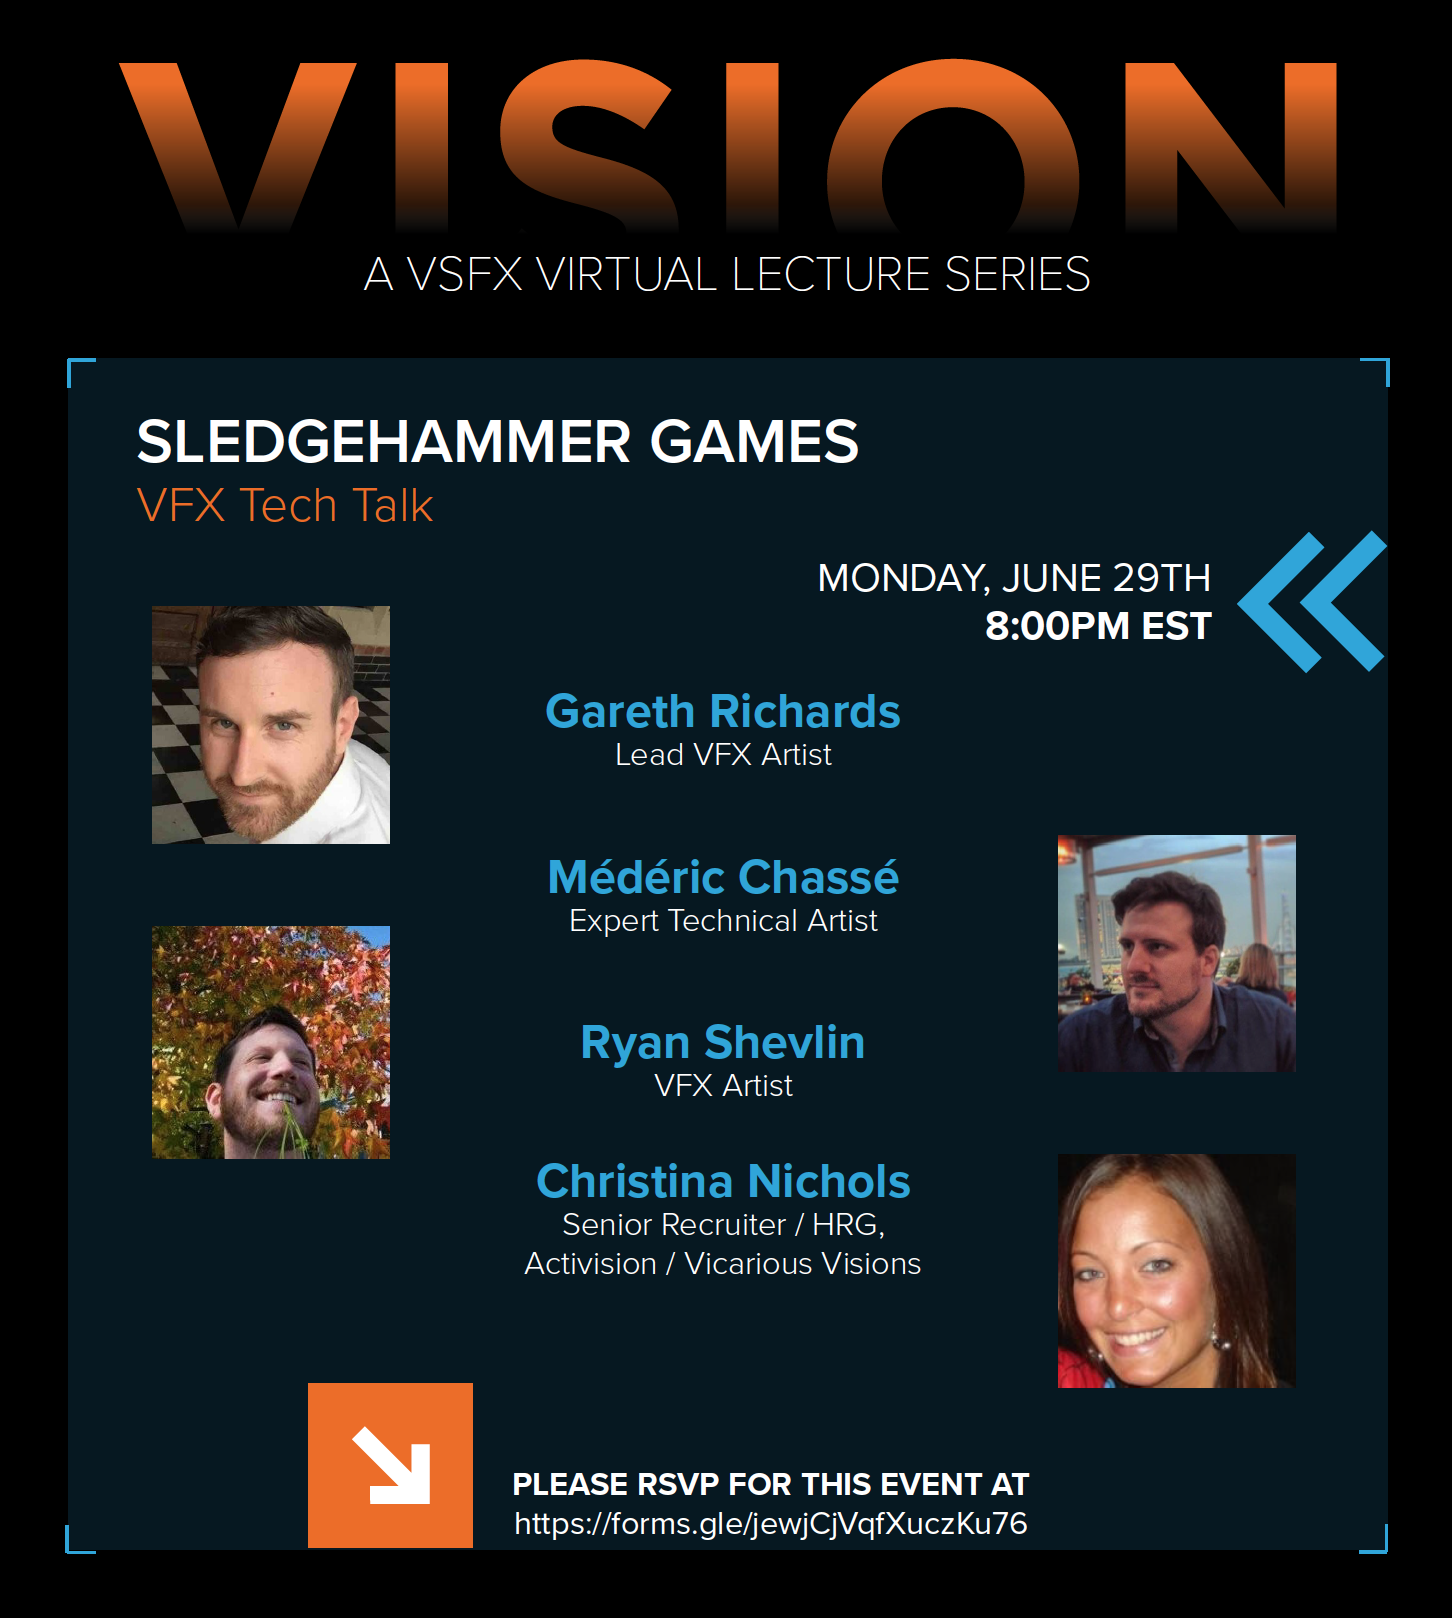 VISION  Virtual Lecture Series presents Sledgehammer Games VFX Tech Talk